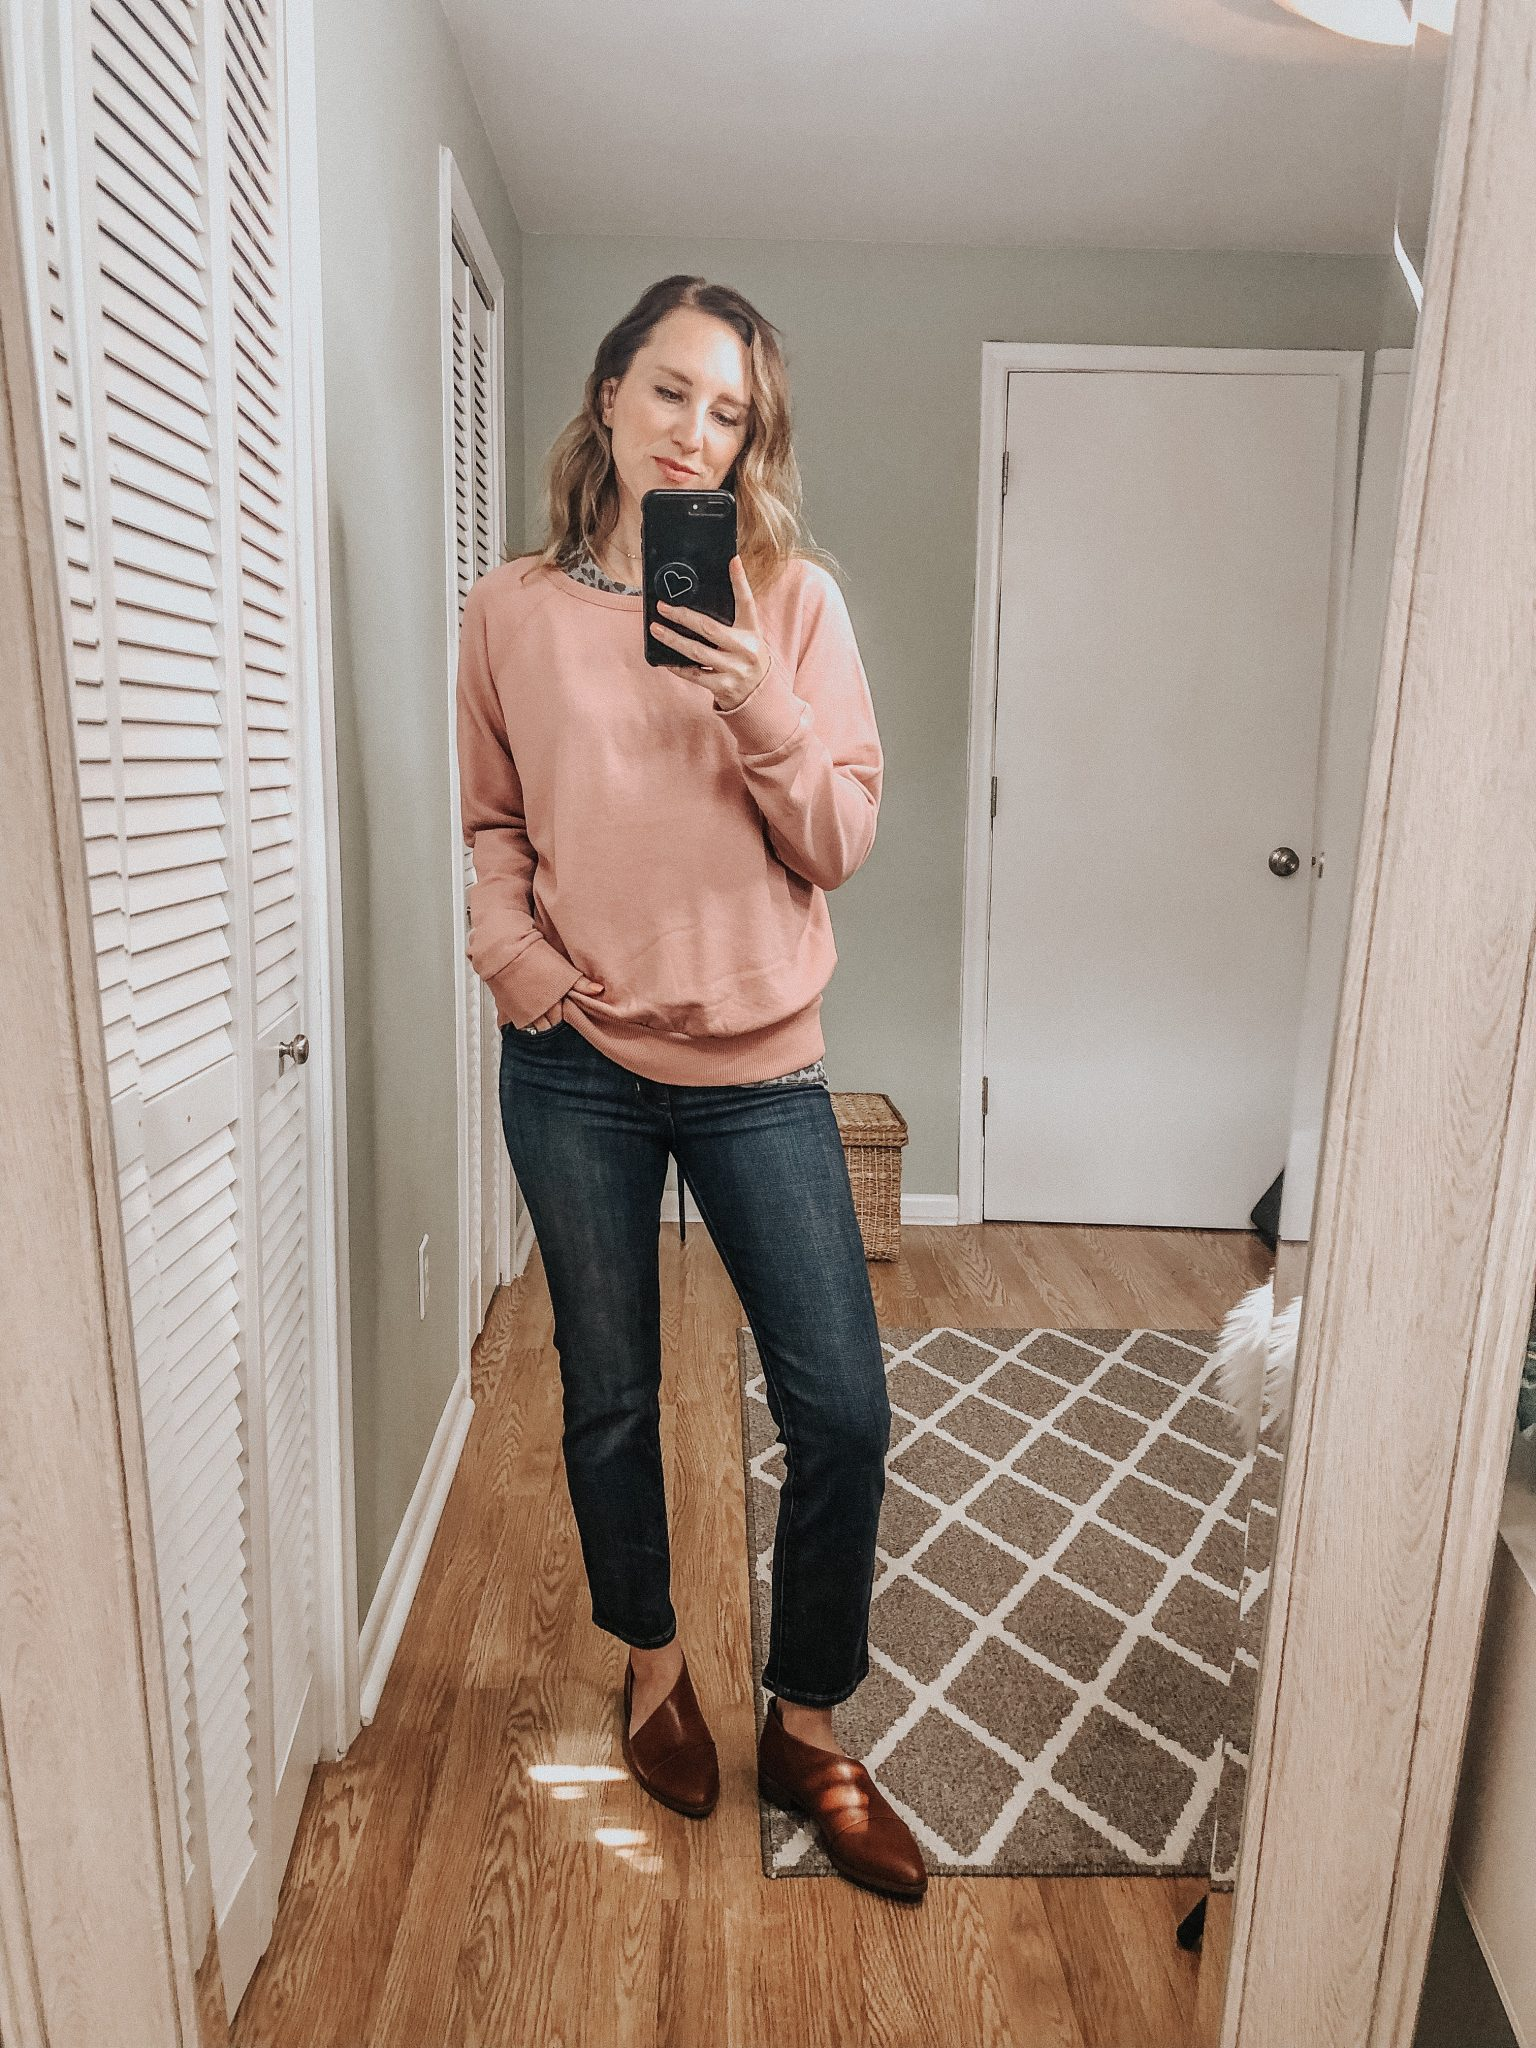 Fall Target Try On | Blush sweatshirt and crop levis with brown booties #fallstyle #targetstyle #targettryon #momstyle